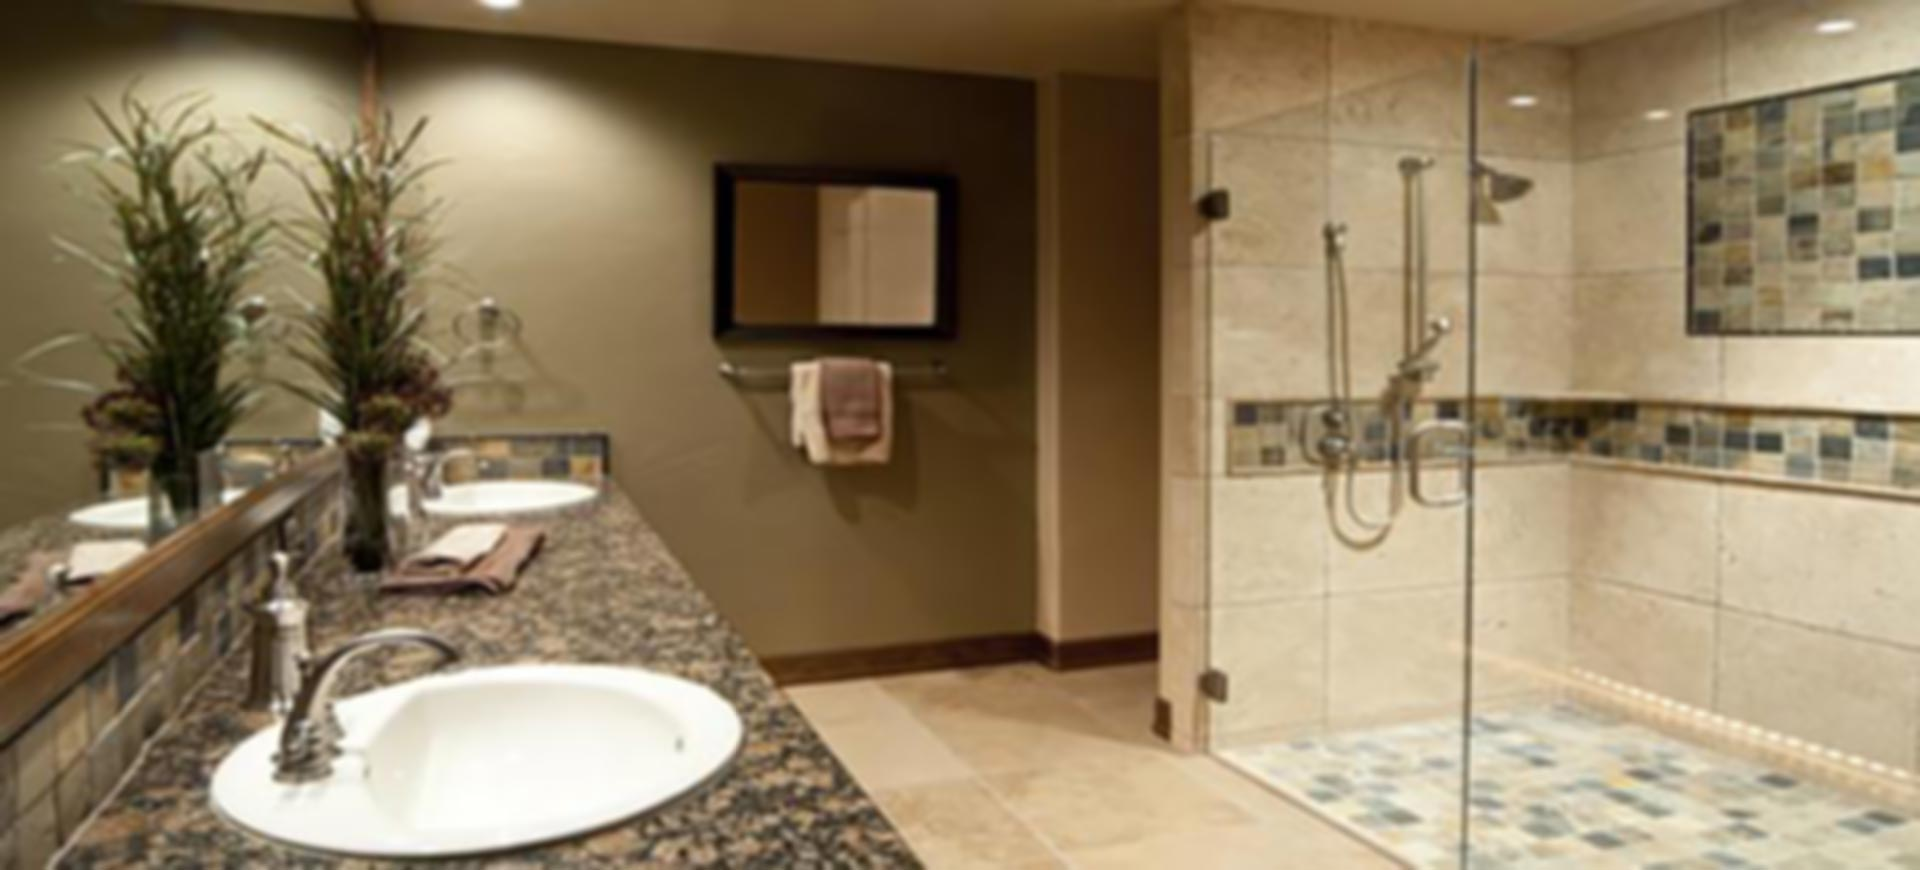 Bathroom Reno in Richmond Hill, Ontario